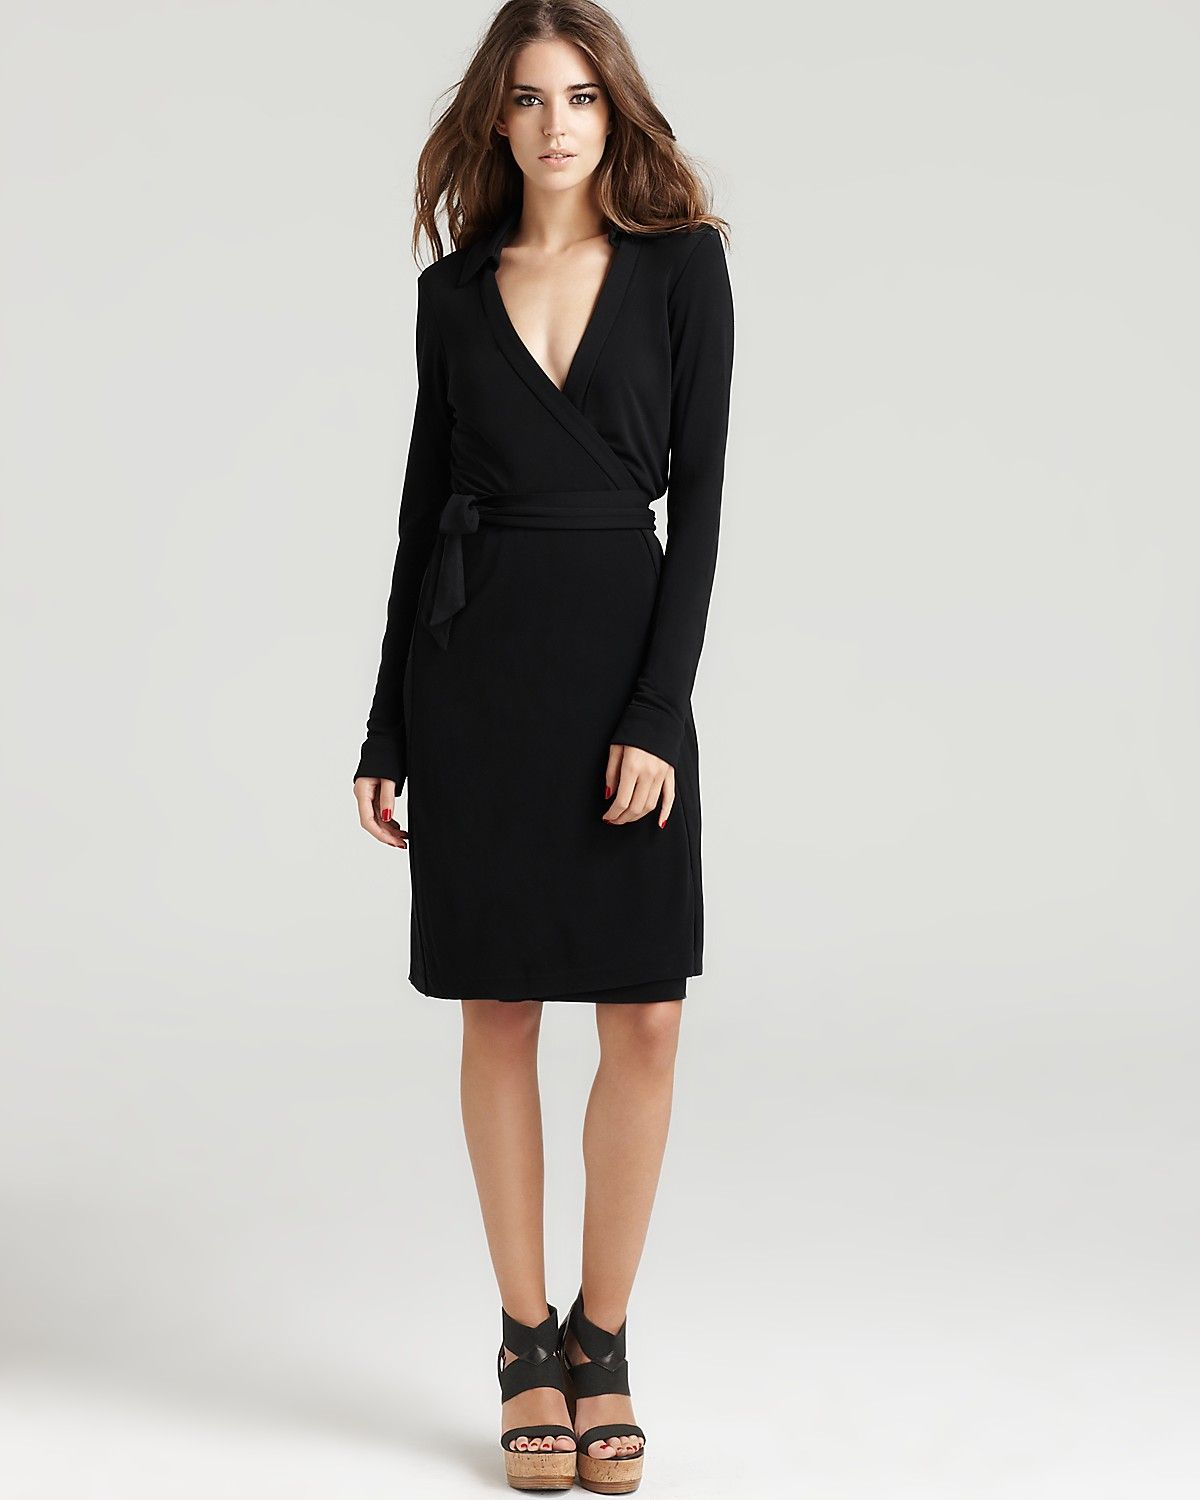 Diane von Furstenberg (DVF) wrap dress for Friday's business ...